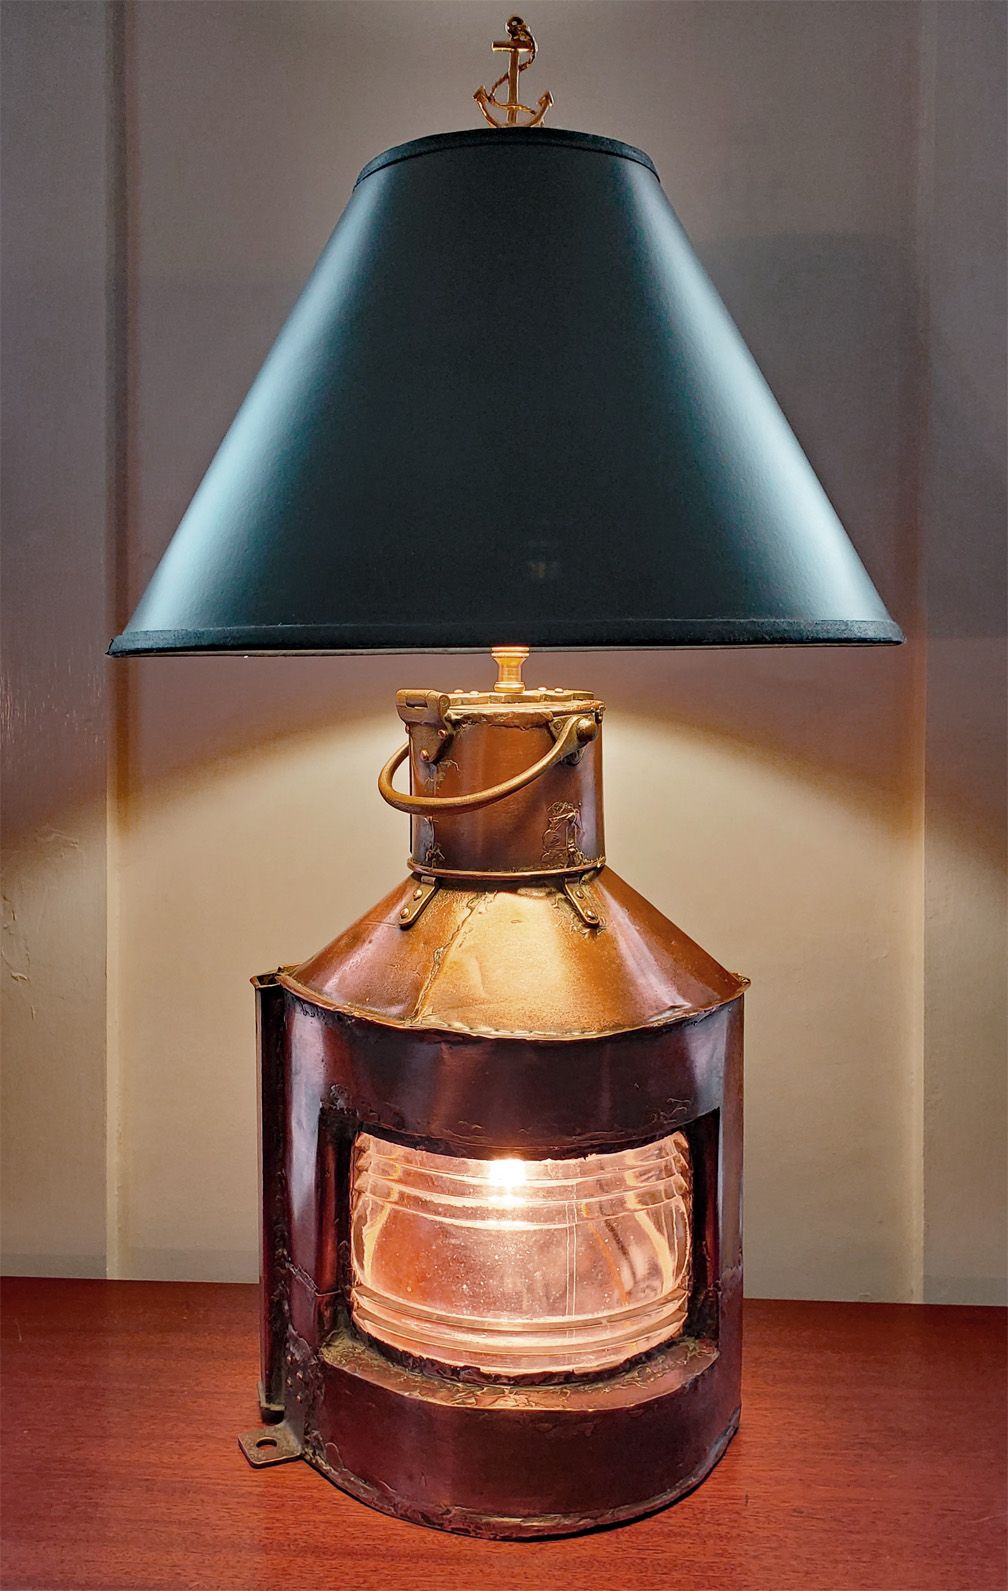 Authentic Copper Navigational Light Nautical Table Lamp In 2020 With Images Table Lamp Lamp Nautical Lamps